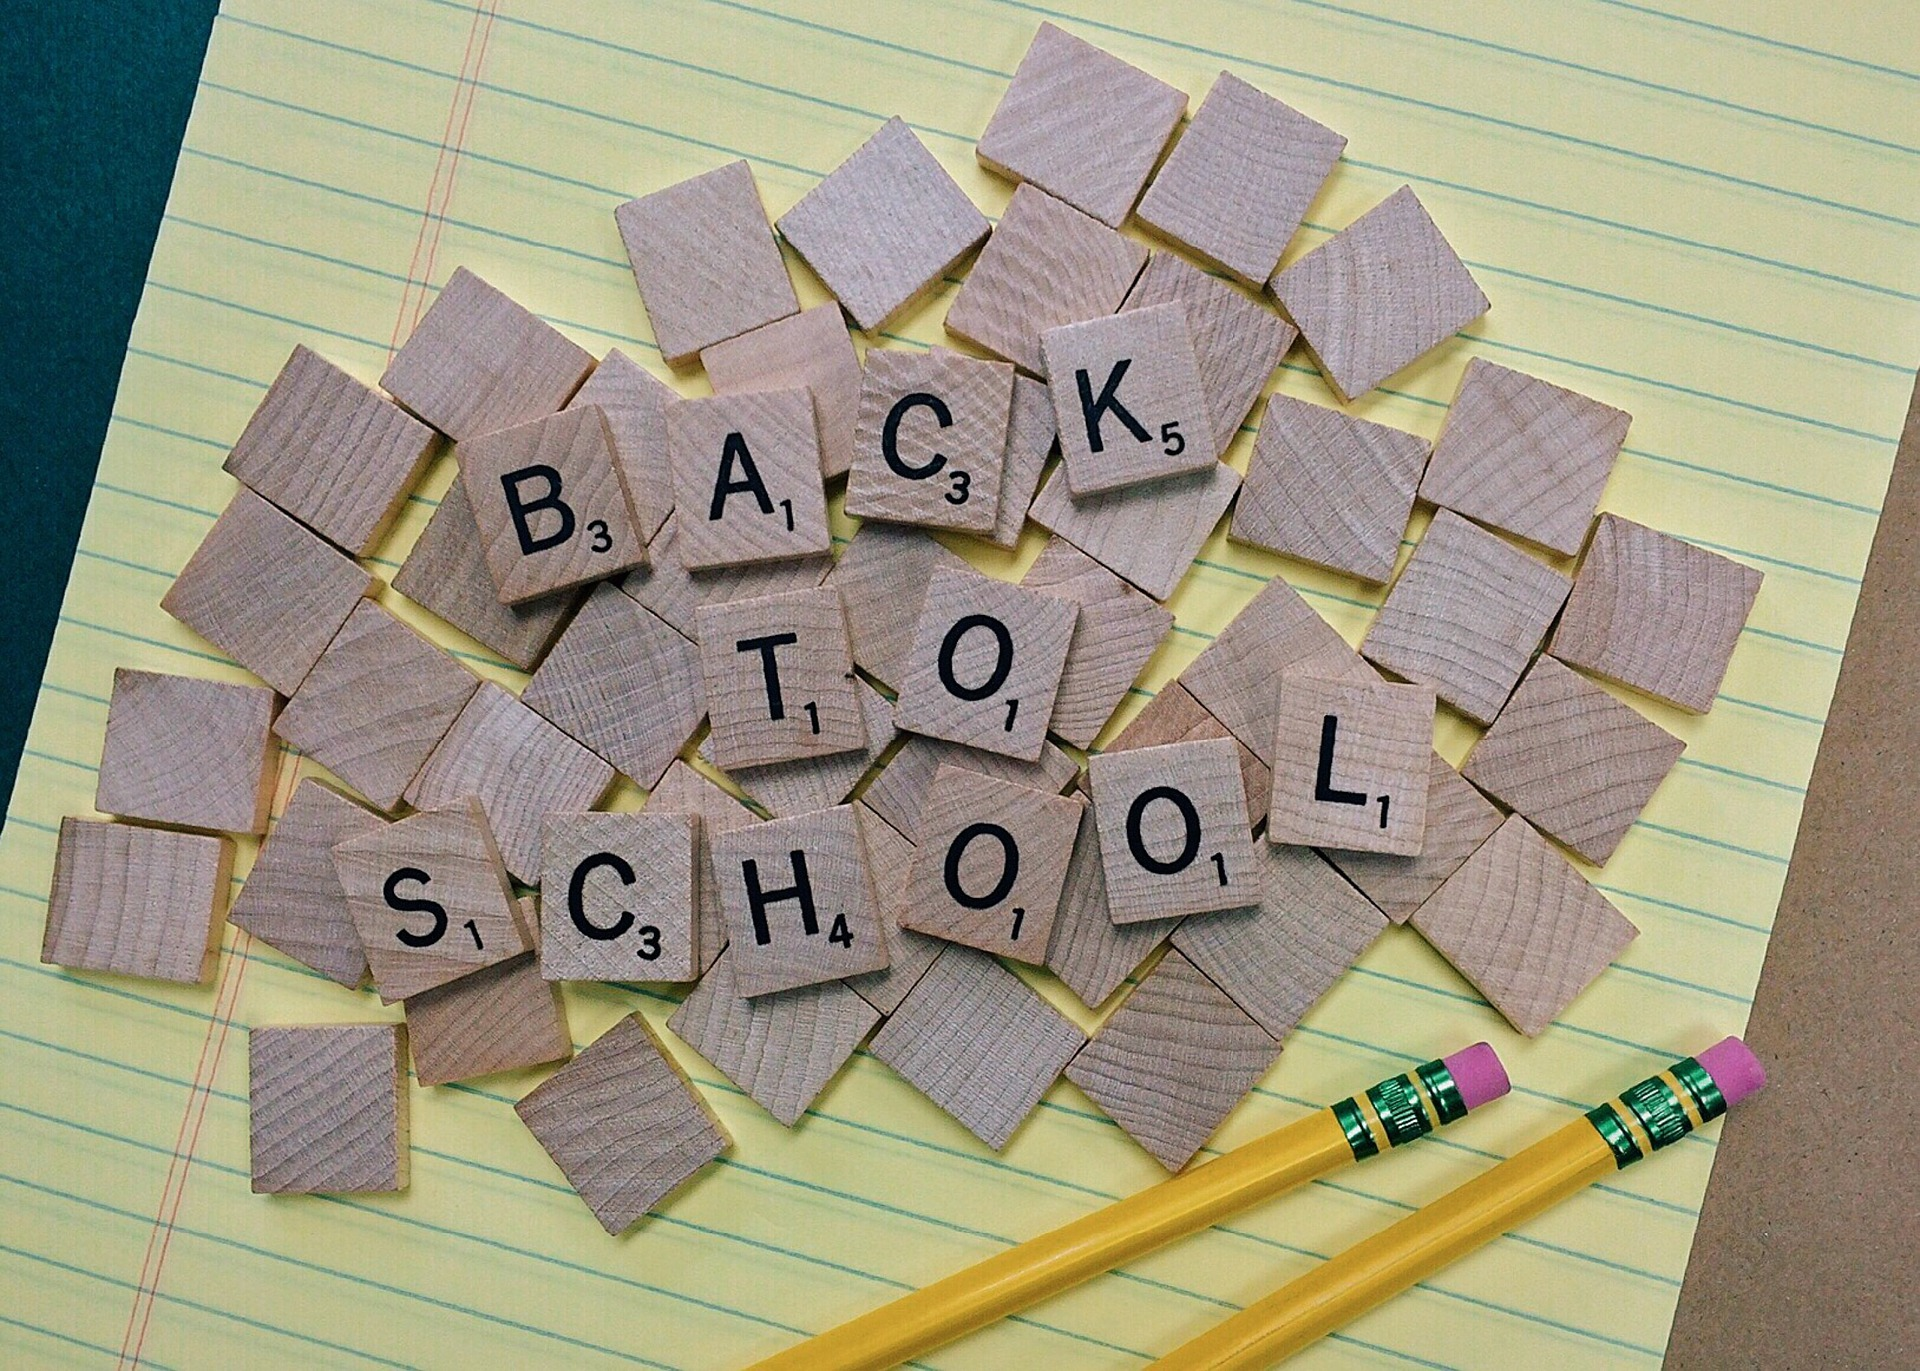 How to Conduct In-Person Research on Schools Before You Move - Find Schools First